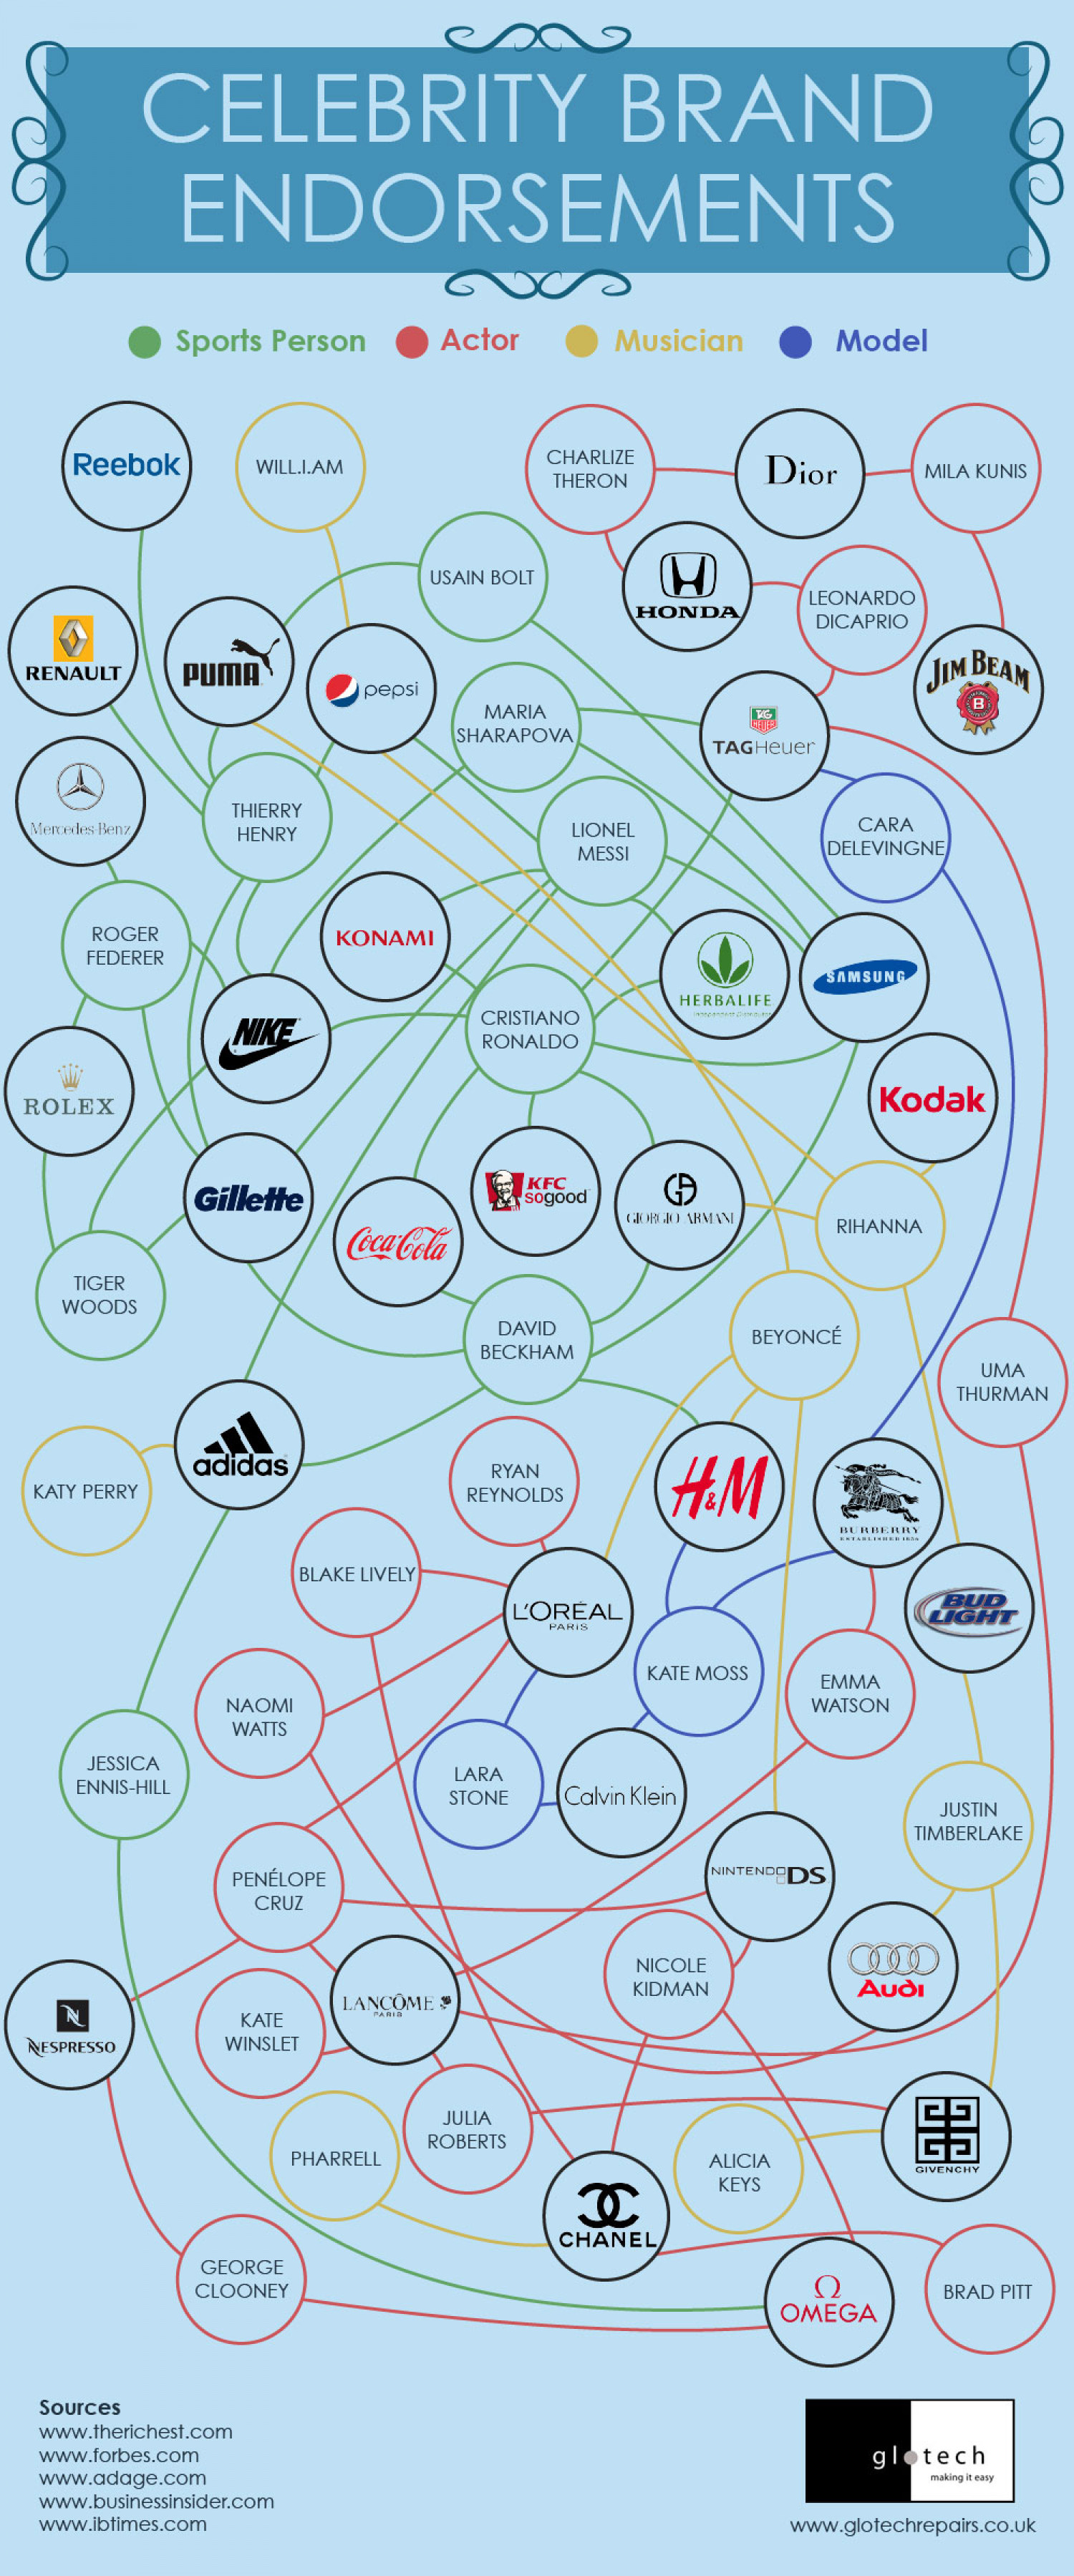 Celebrity Brand Endorsements Infographic